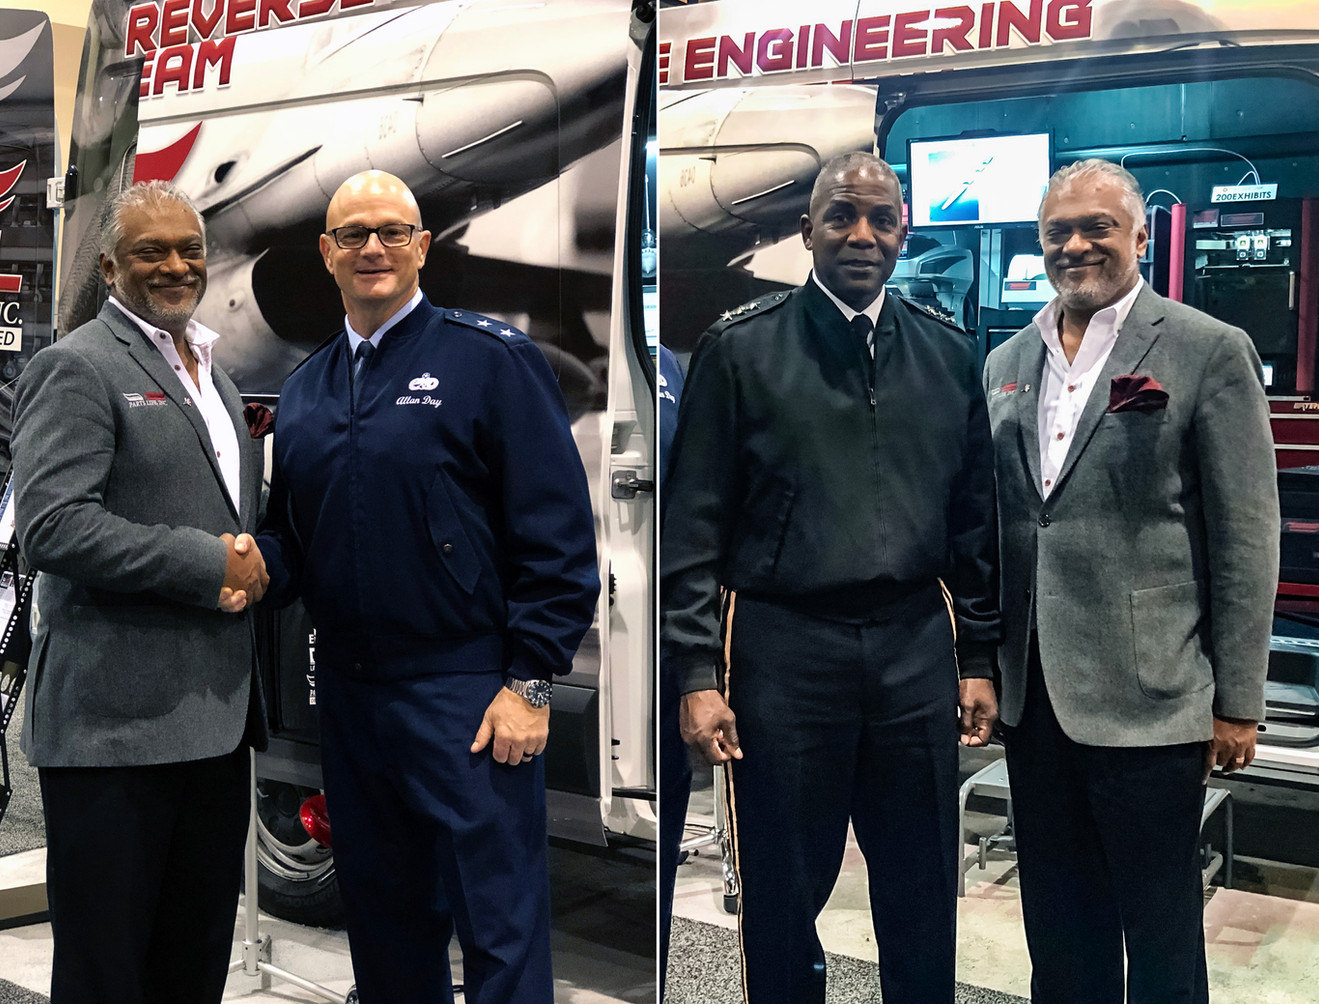 CEO Sam Thevanayagam with Major General Allan E. Day and Lietenant General Darryl A. Williams